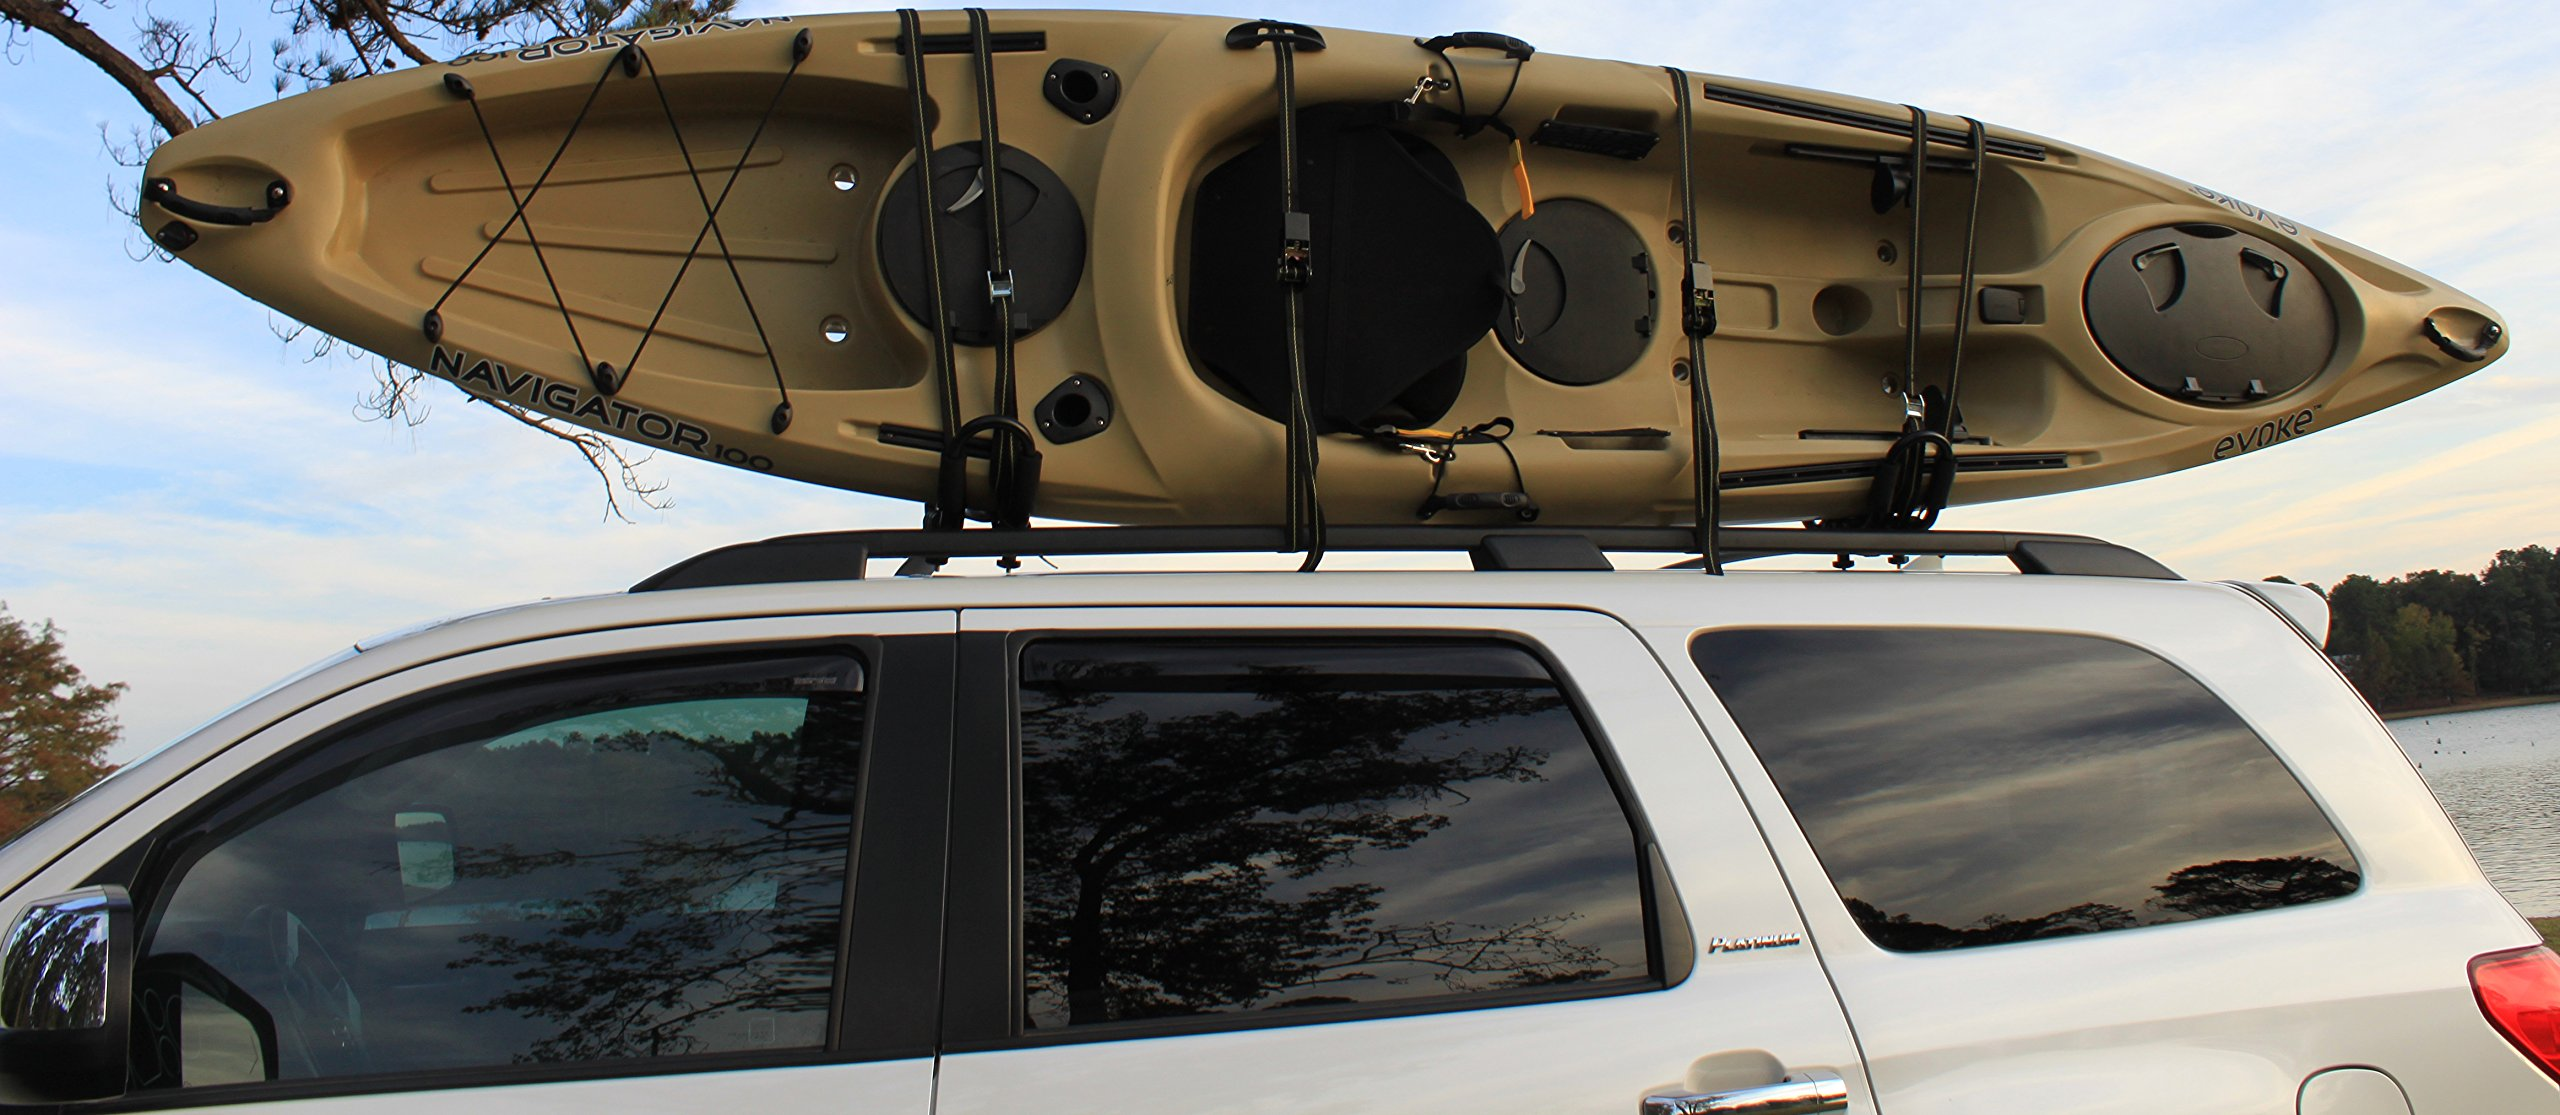 carrier civic review a paddle sup car com on thule up etrailer rack stand the watch board of honda paddleboard taxi